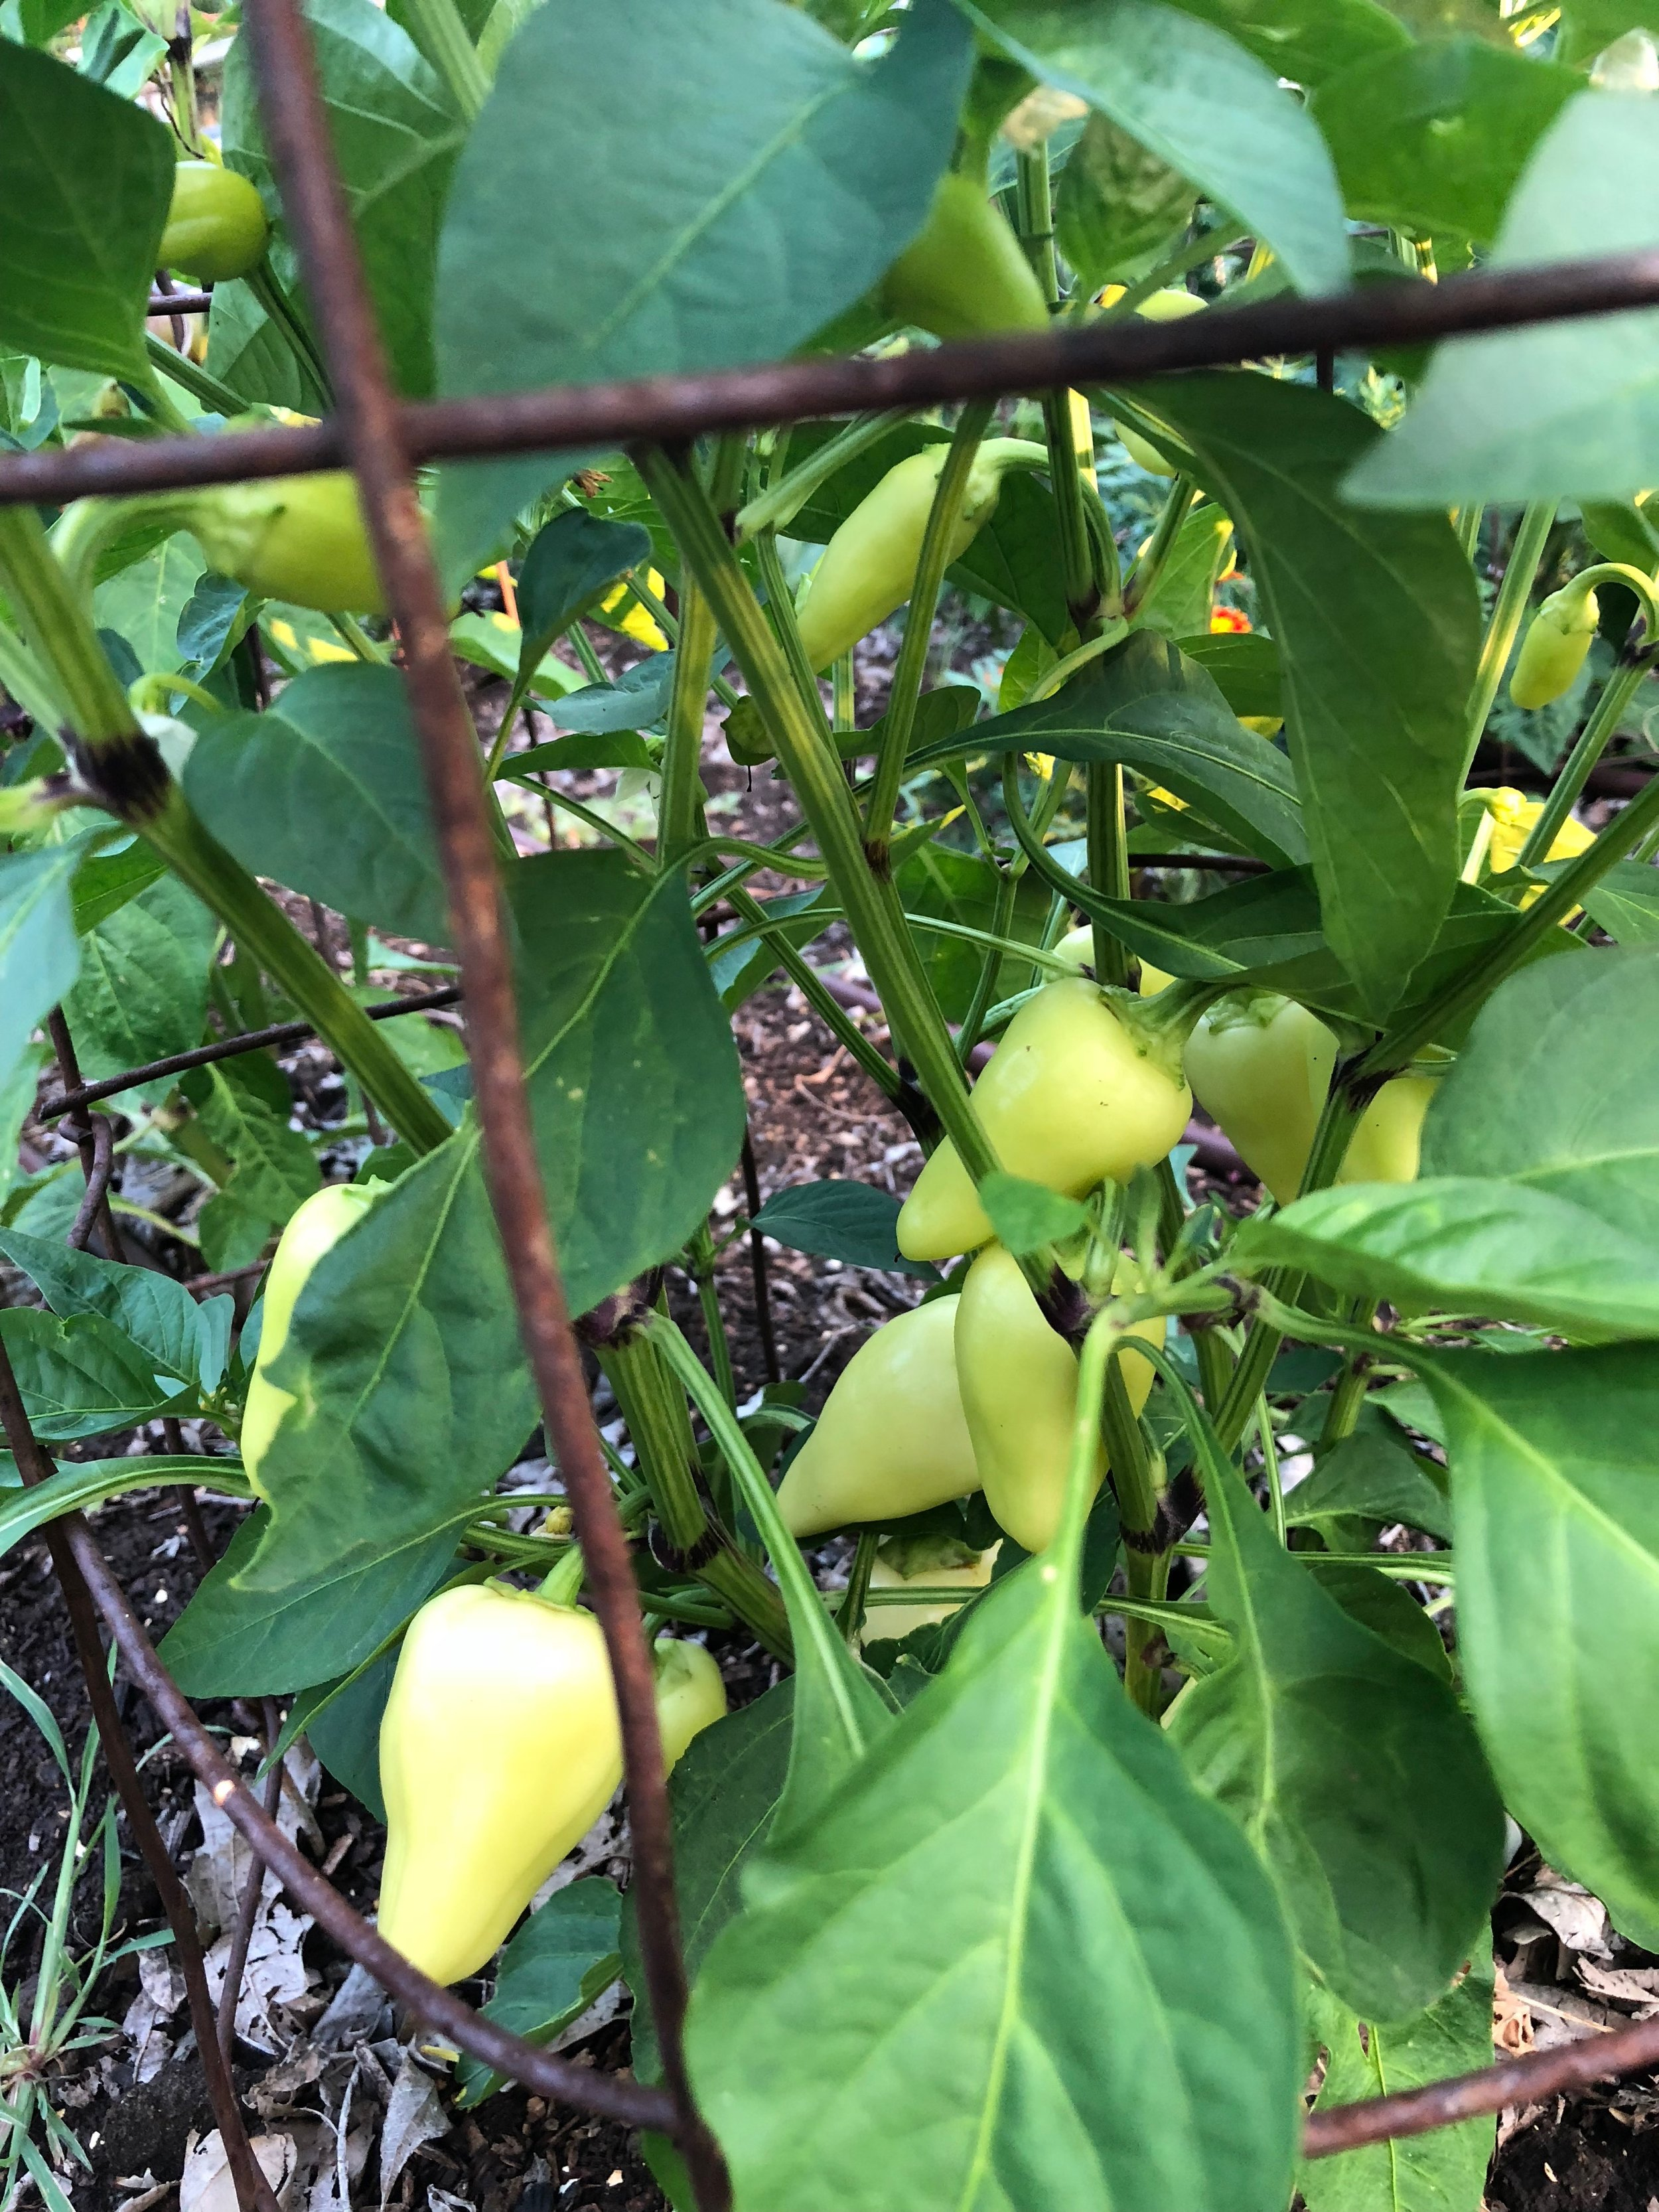 Yellow peppers on the vine